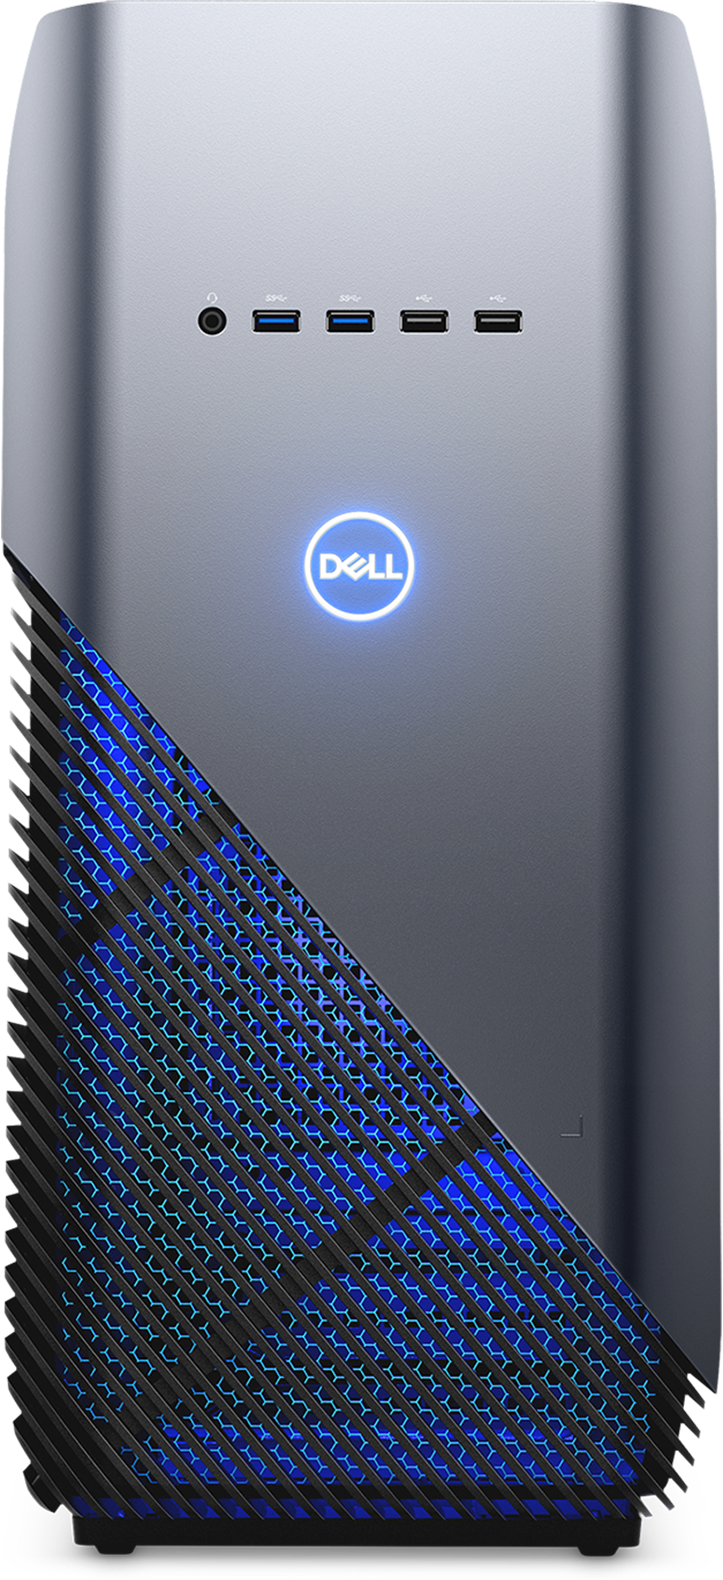 Dell Inspiron Gaming Desktop 5680 frontal view with blue LEDs visible